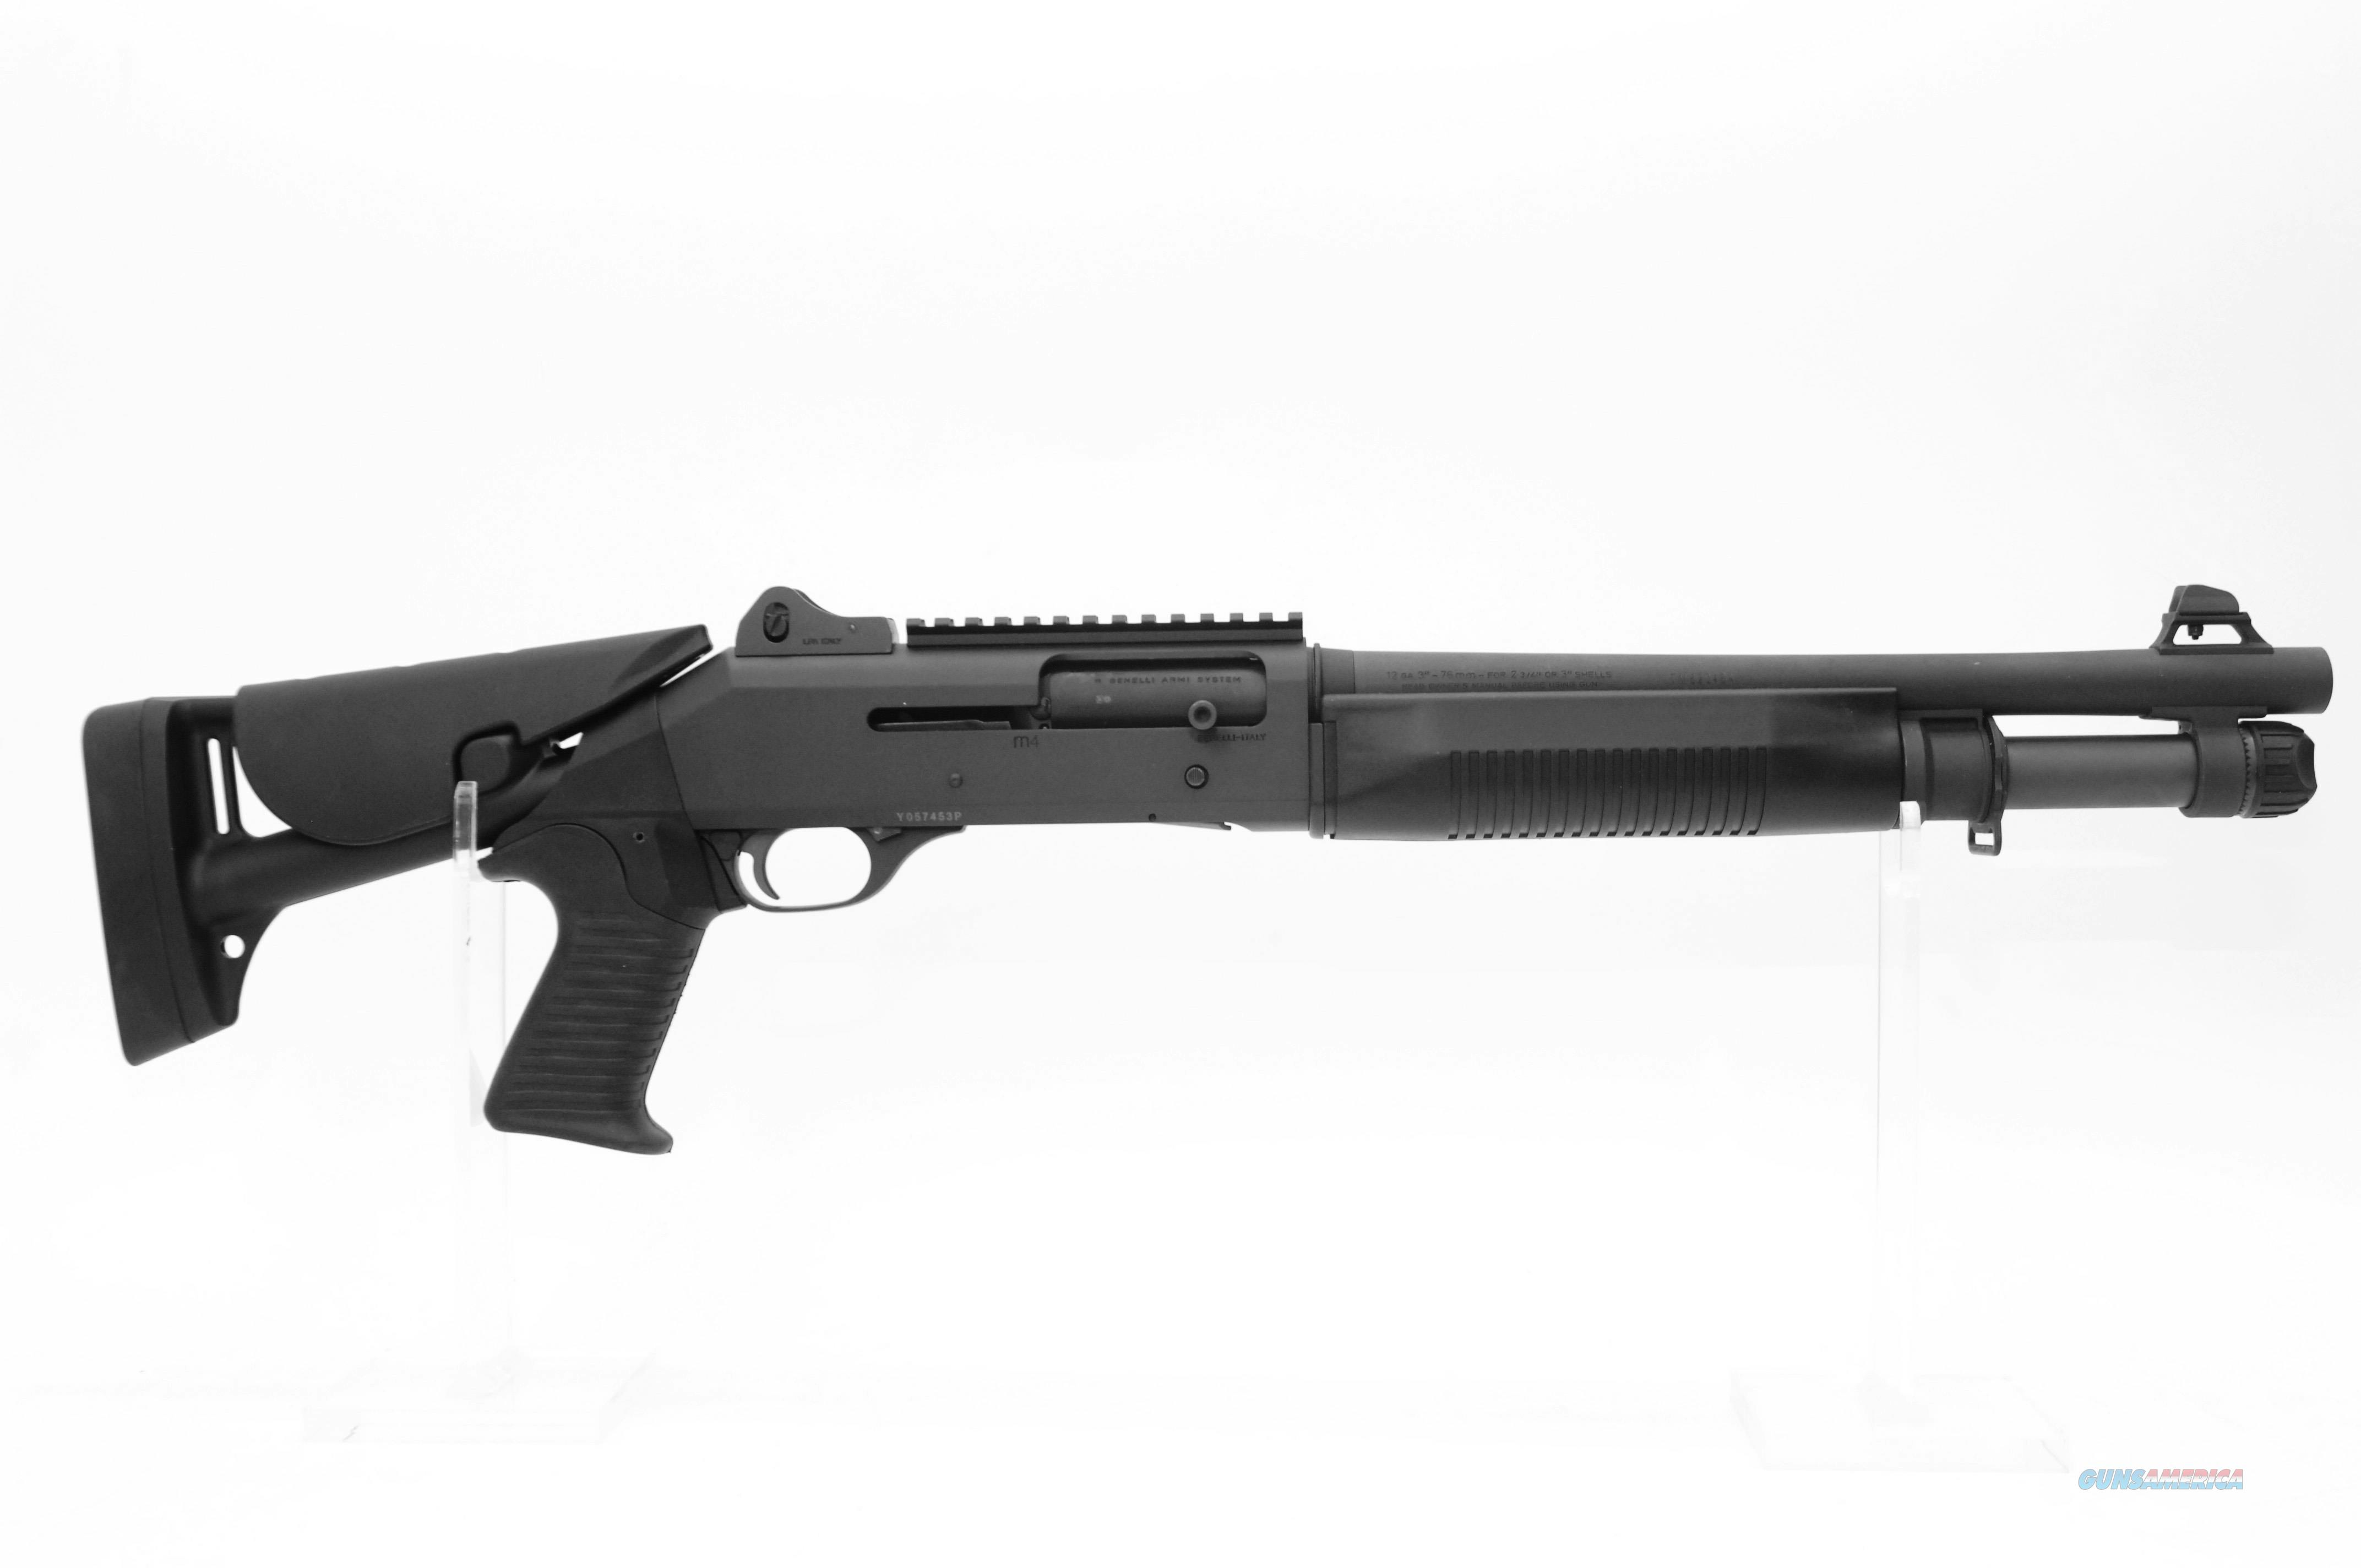 "CALL FOR SPECIAL PRICING! Benelli M4 14"" 3 Pos Telestock  Guns > Shotguns > Class 3 Shotguns > Class 3 Dealer/Law Enf. Only"